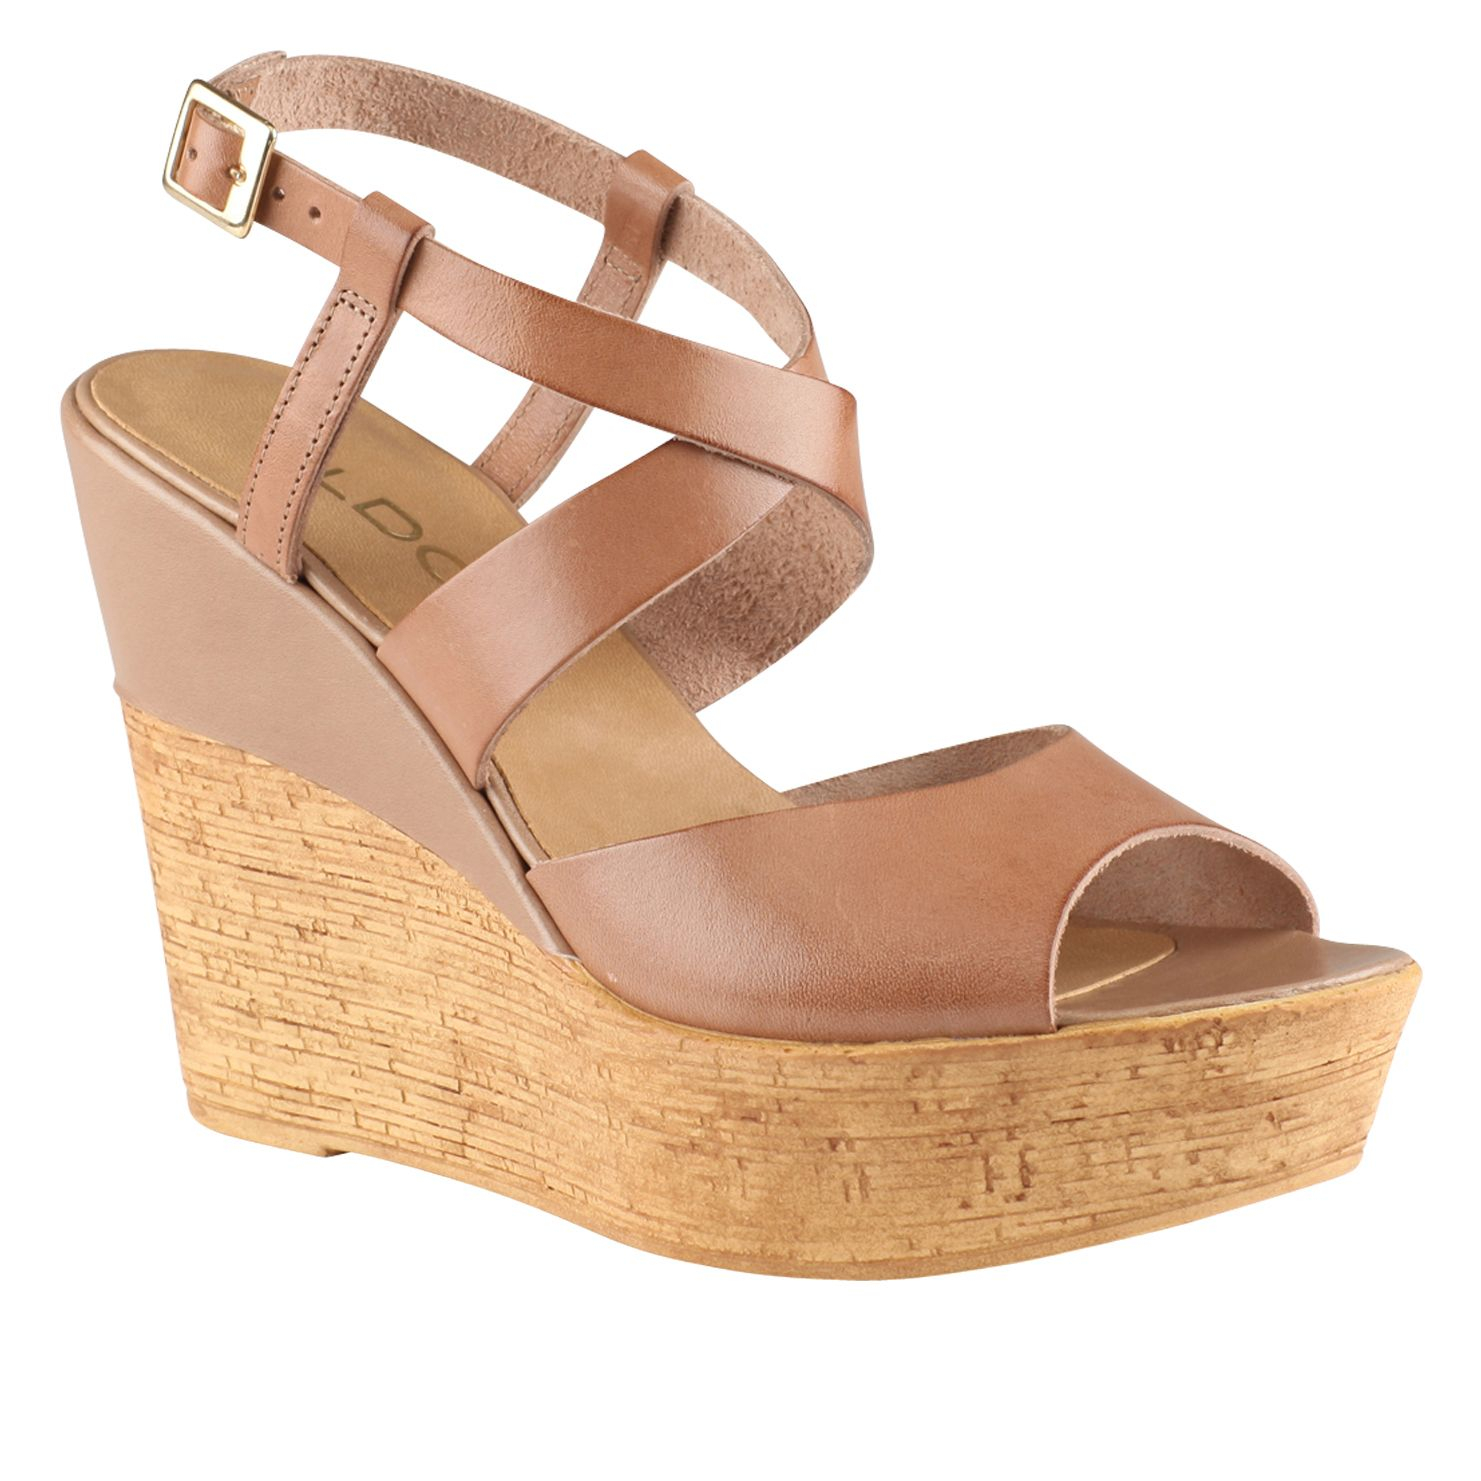 aldo dradolle ankle wedge sandals in brown taupe